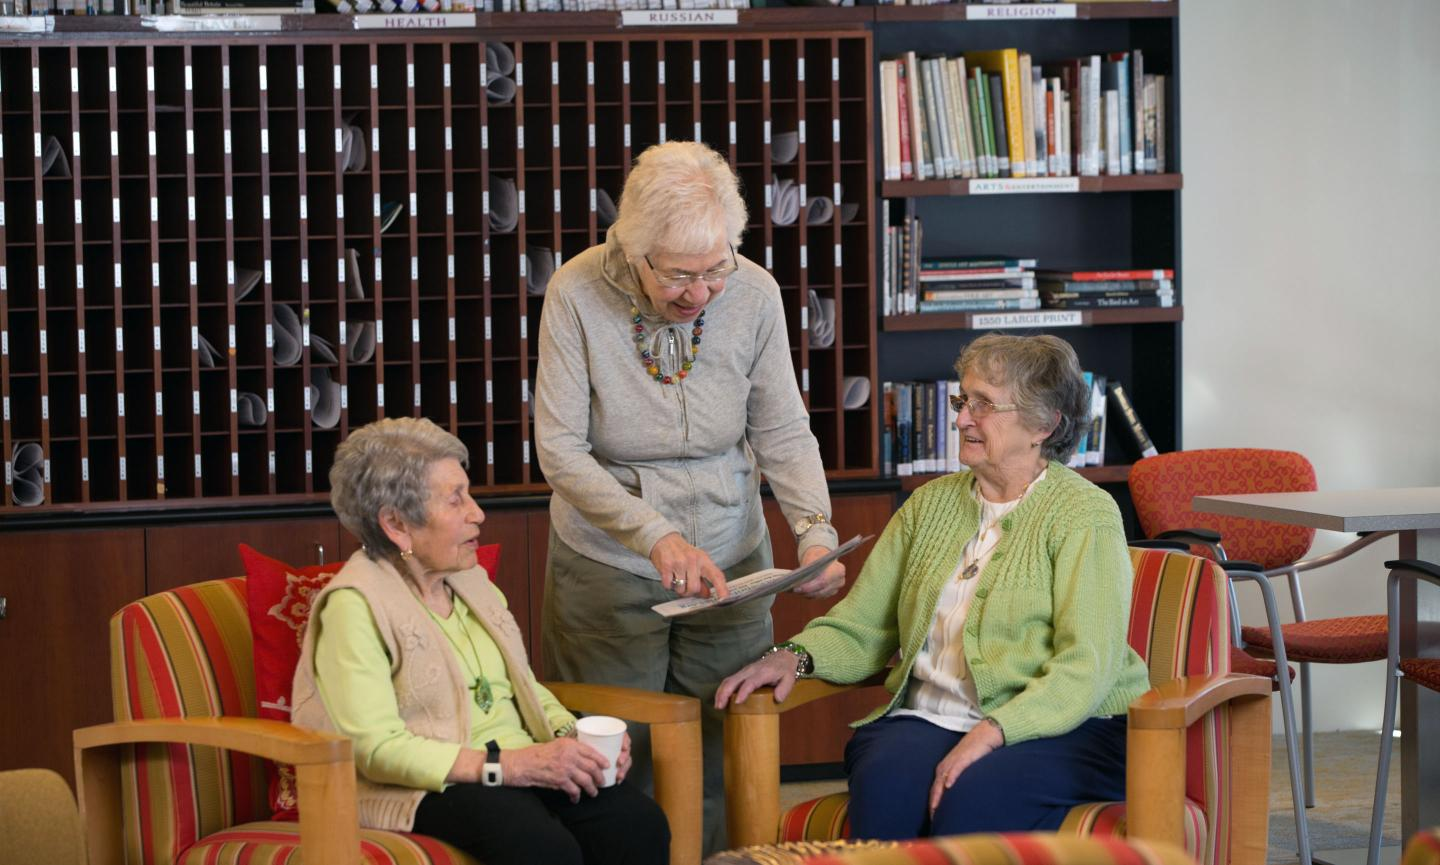 Three women drink coffee and converse in a library seating area at Center Communities of Brookline